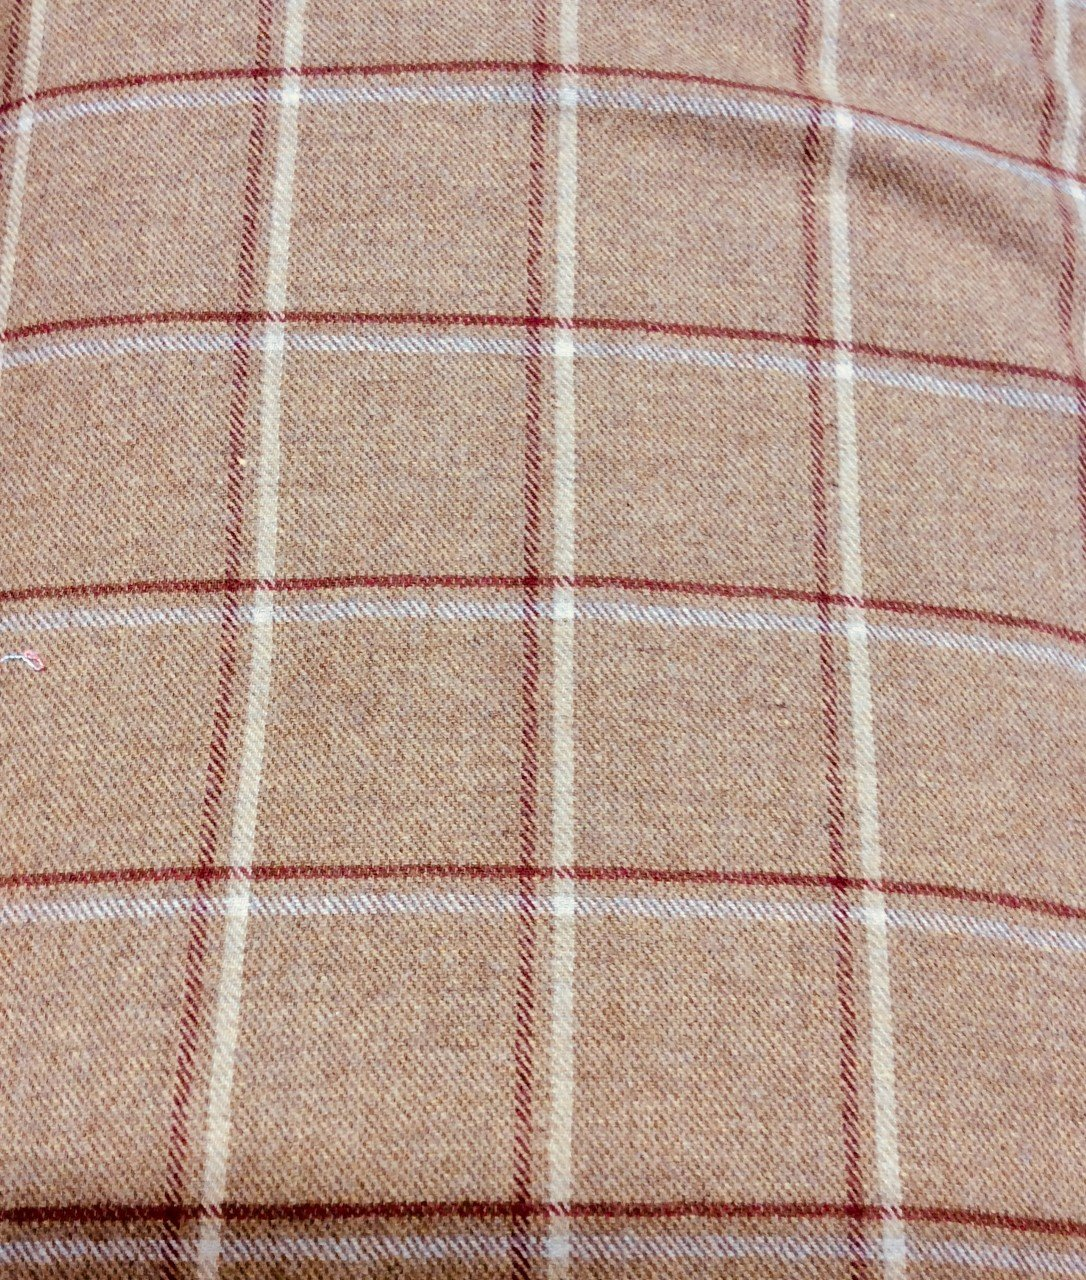 Tan Cream and Red Plaid Wool